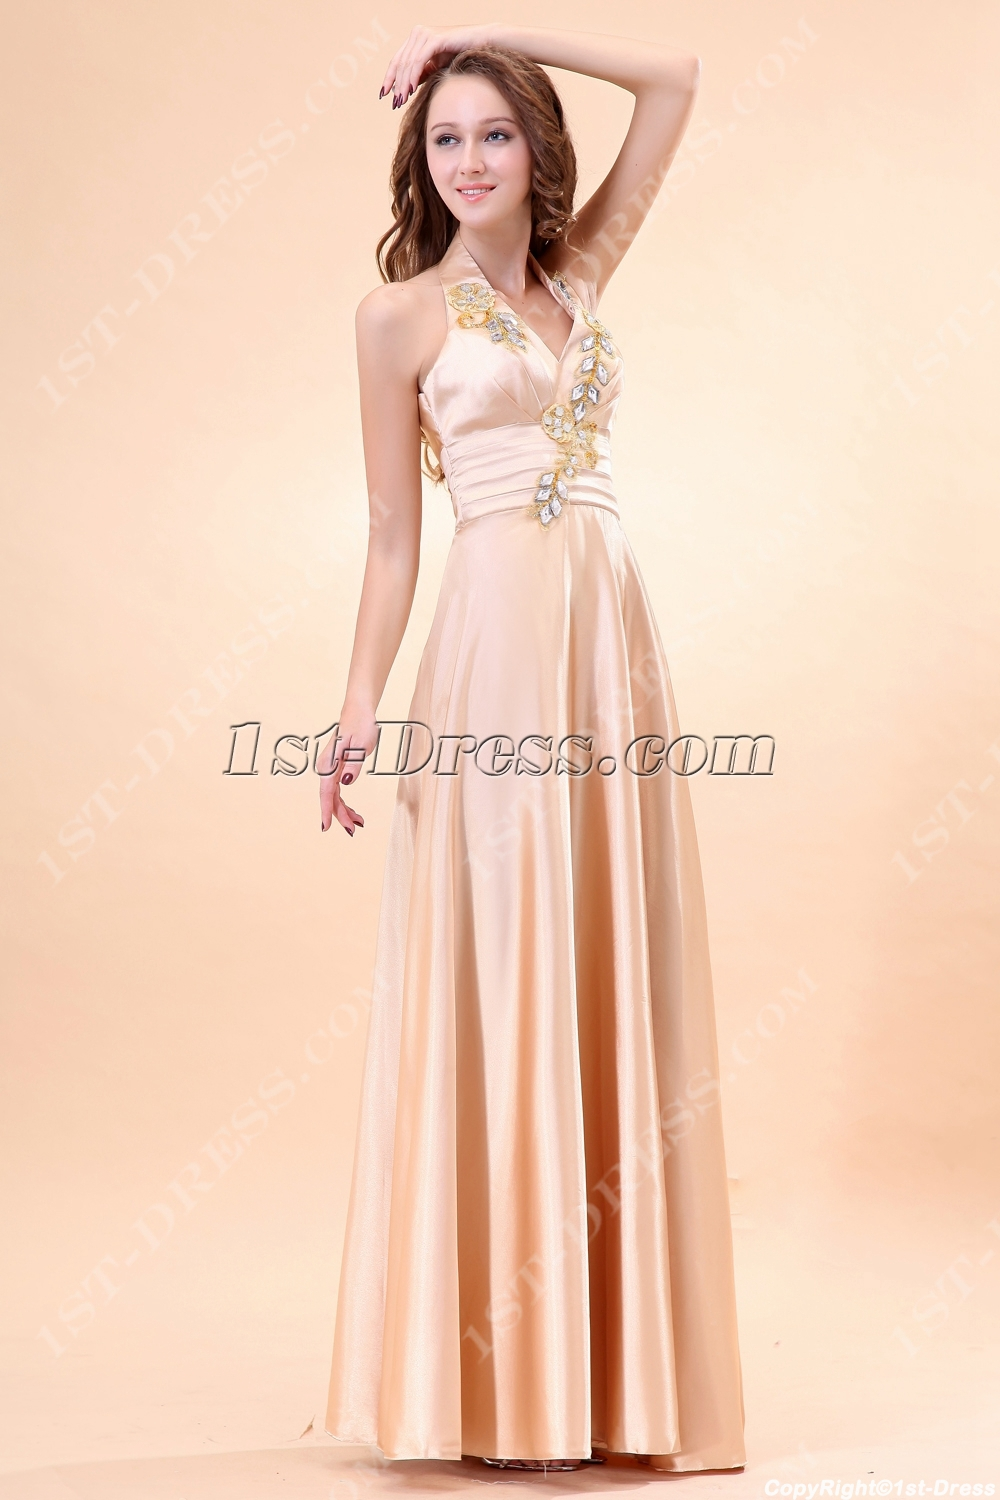 http://www.1st-dress.com/images/201311/source/Elegant-Halter-Champagne-Plus-Size-Evening-Gown-3465-b-1-1384006925.jpg